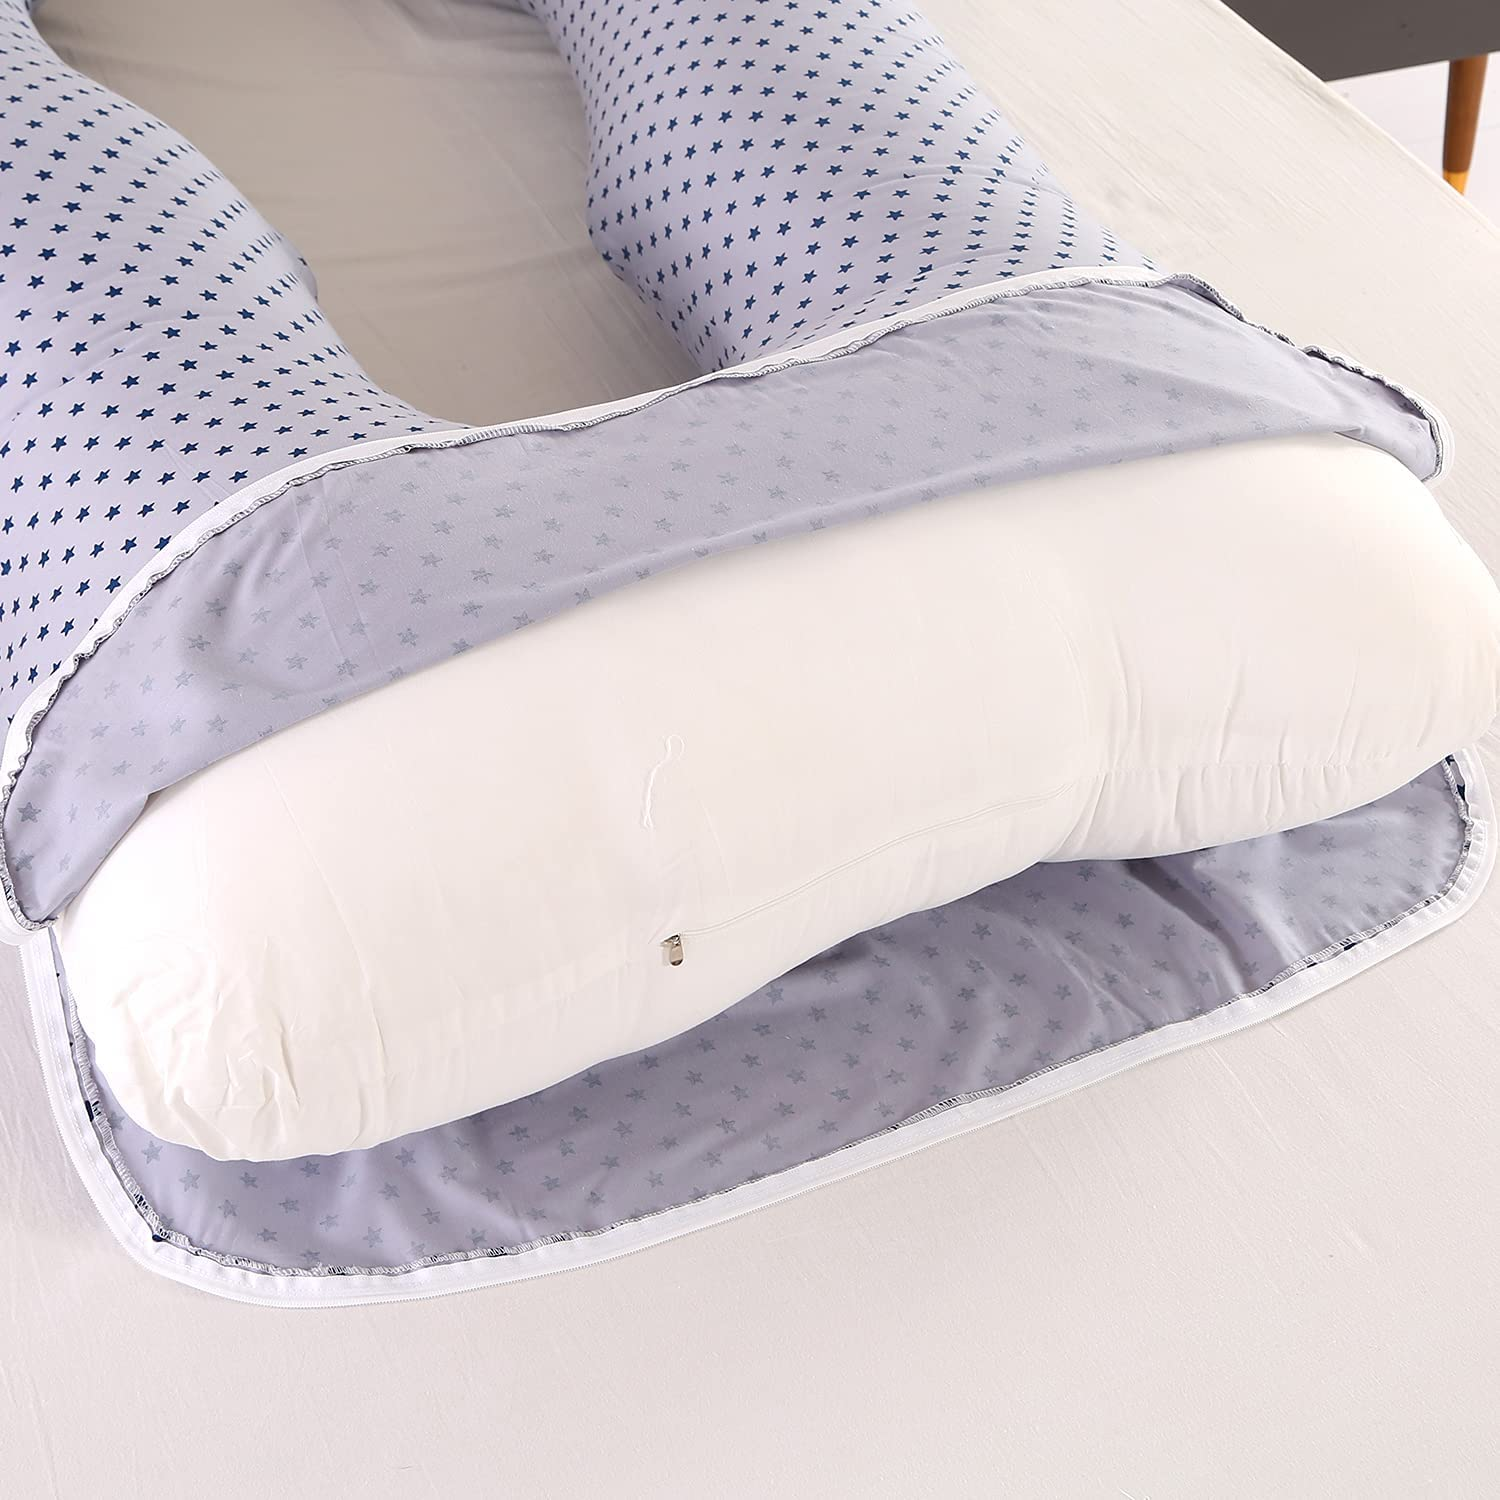 57 inch Maternity Pillow, U Shaped Pregnant Women Full Body Pillow for Hip, Leg, Back Pain, washable Jersey Cover enlarge